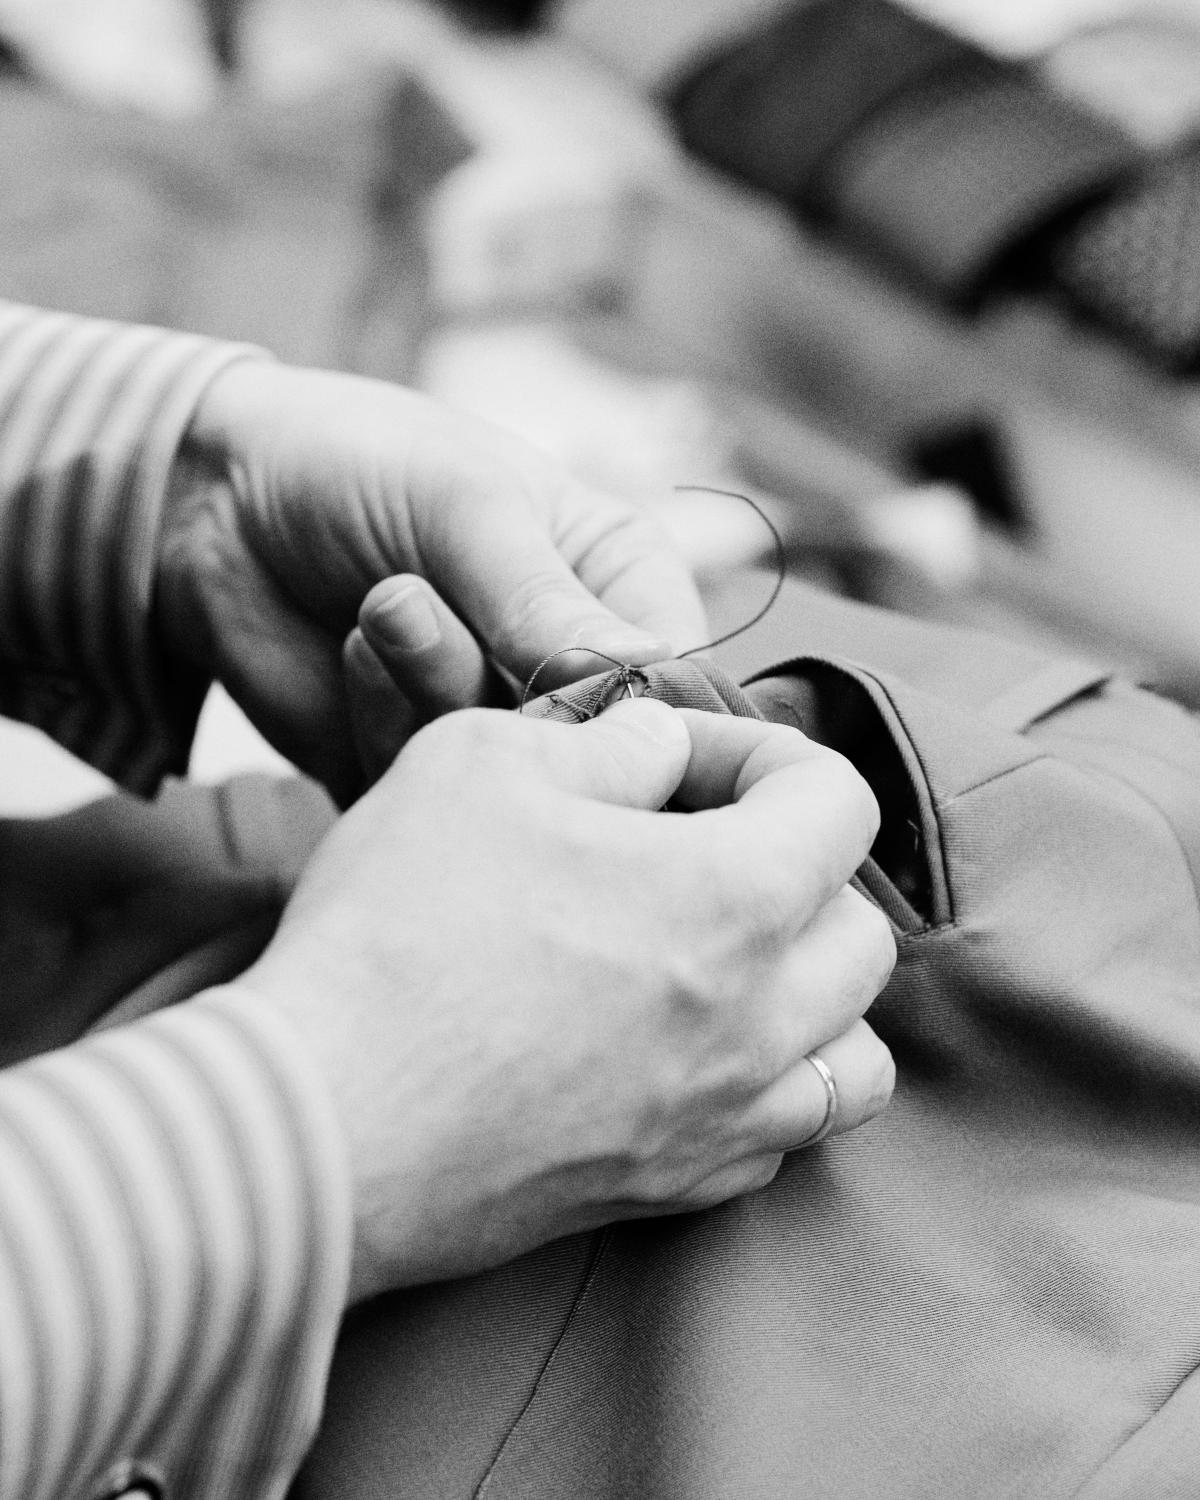 black and white photo of a pair of hands hand sewing stitches into a suit